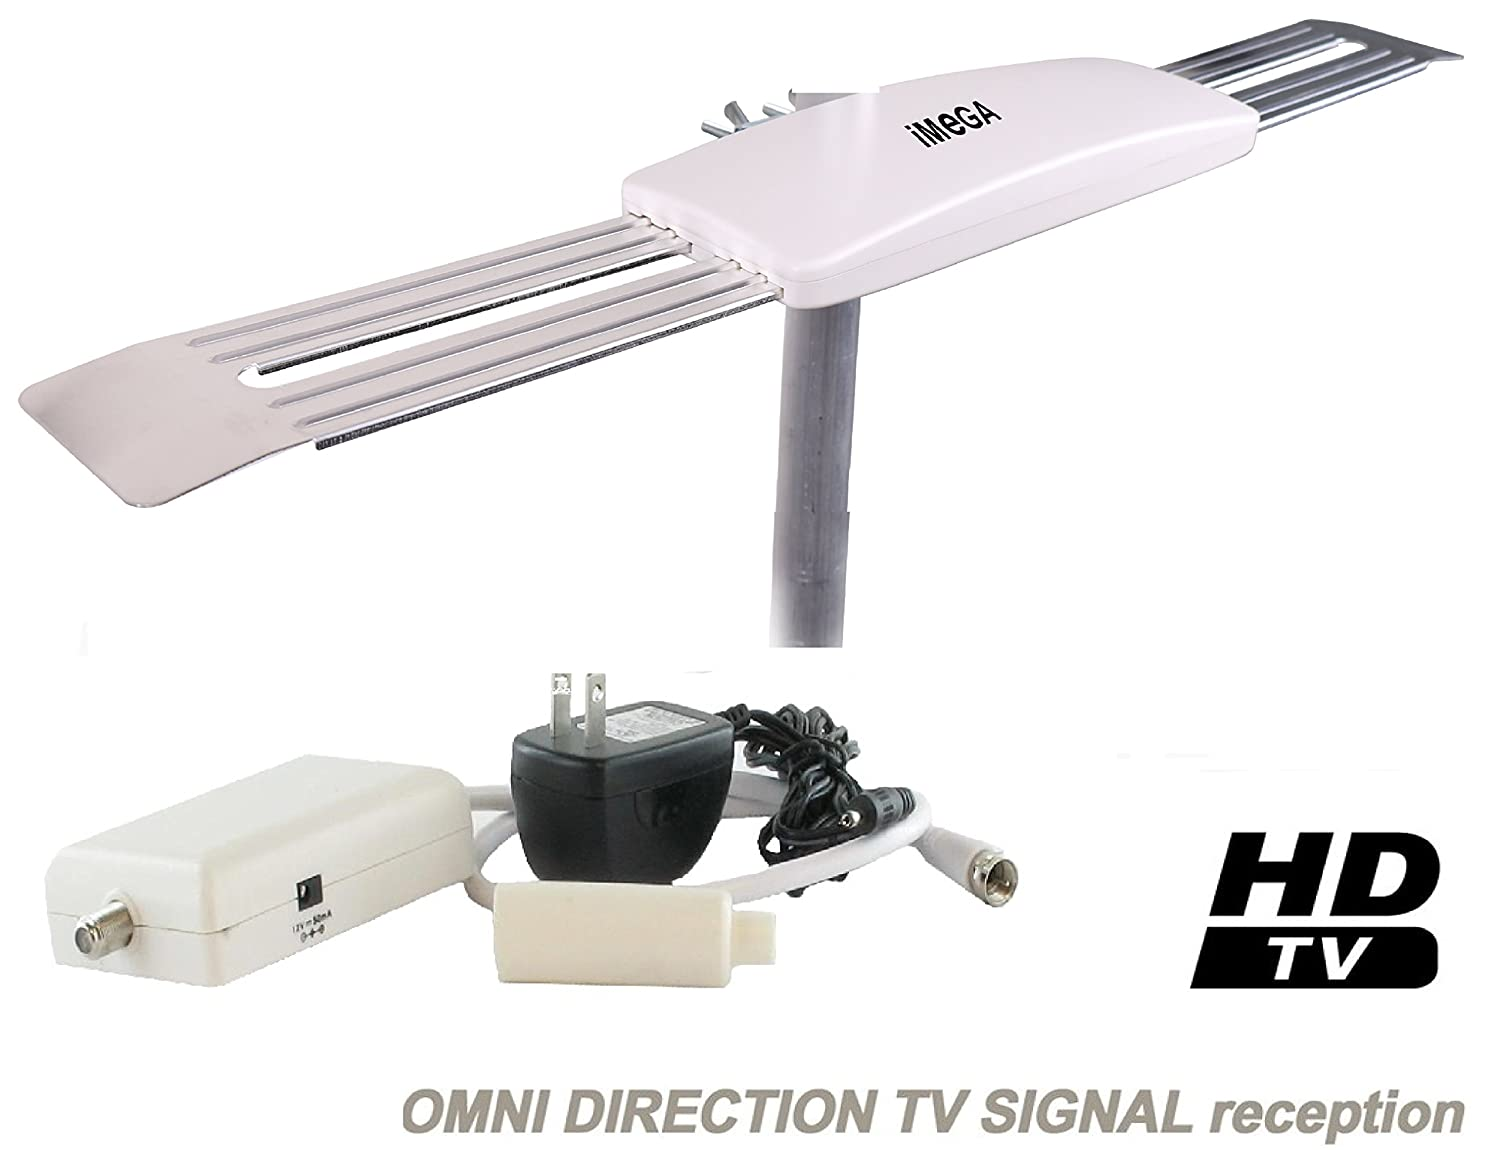 iMEGA HD-9008 OMNI-TYPE DIRECTIONAL DIGITAL HD TV UHF OUTDOOR ANTENNA , Suitable for Homes, RV, Boats, Campers, Trucks